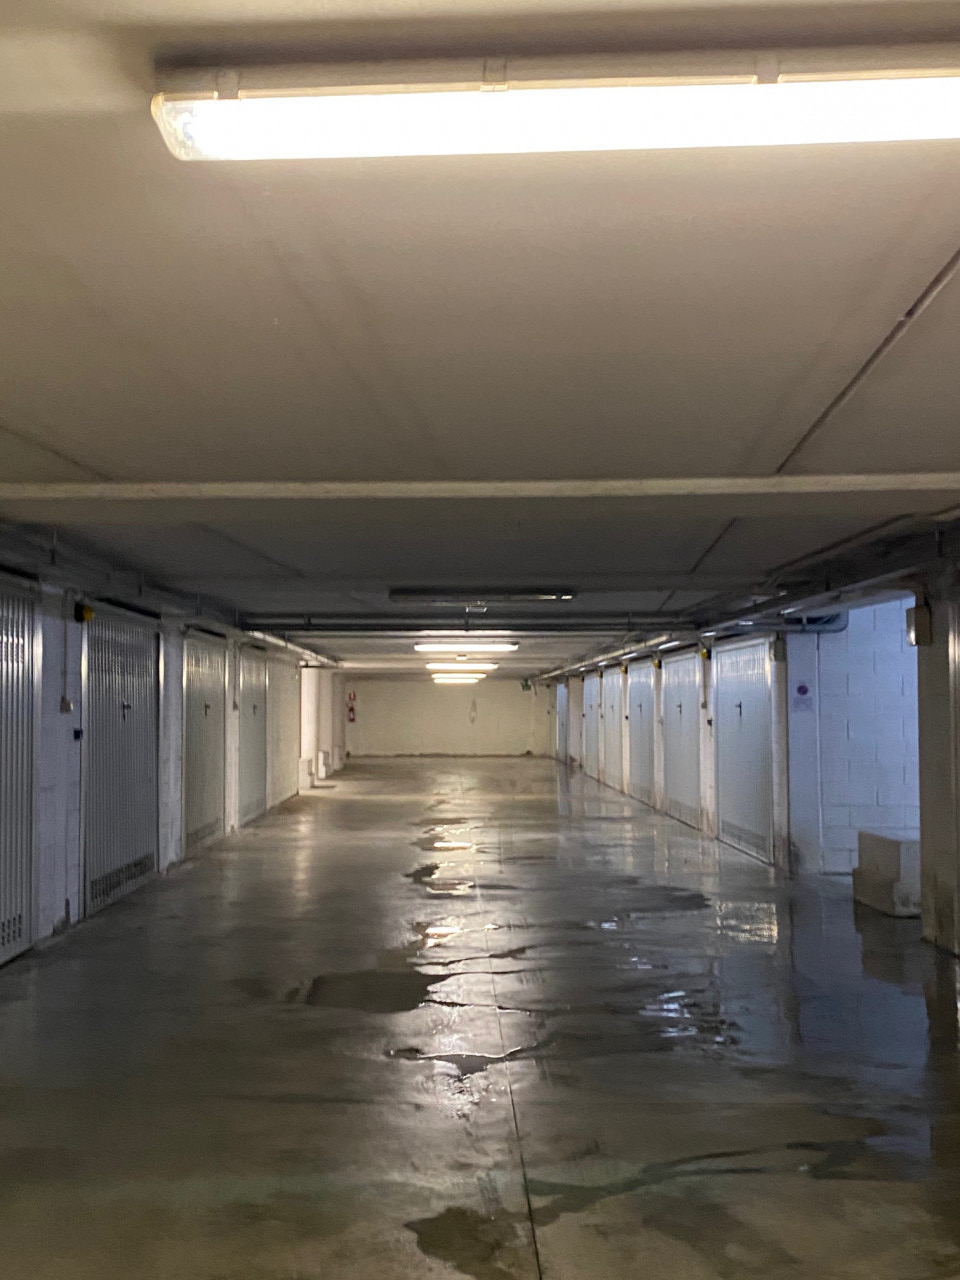 D324 Garage centralissimo in vendita ad Abano Terme https://images.gestionaleimmobiliare.it/foto/annunci/210222/2396194/1280x1280/999__img_5220.jpg